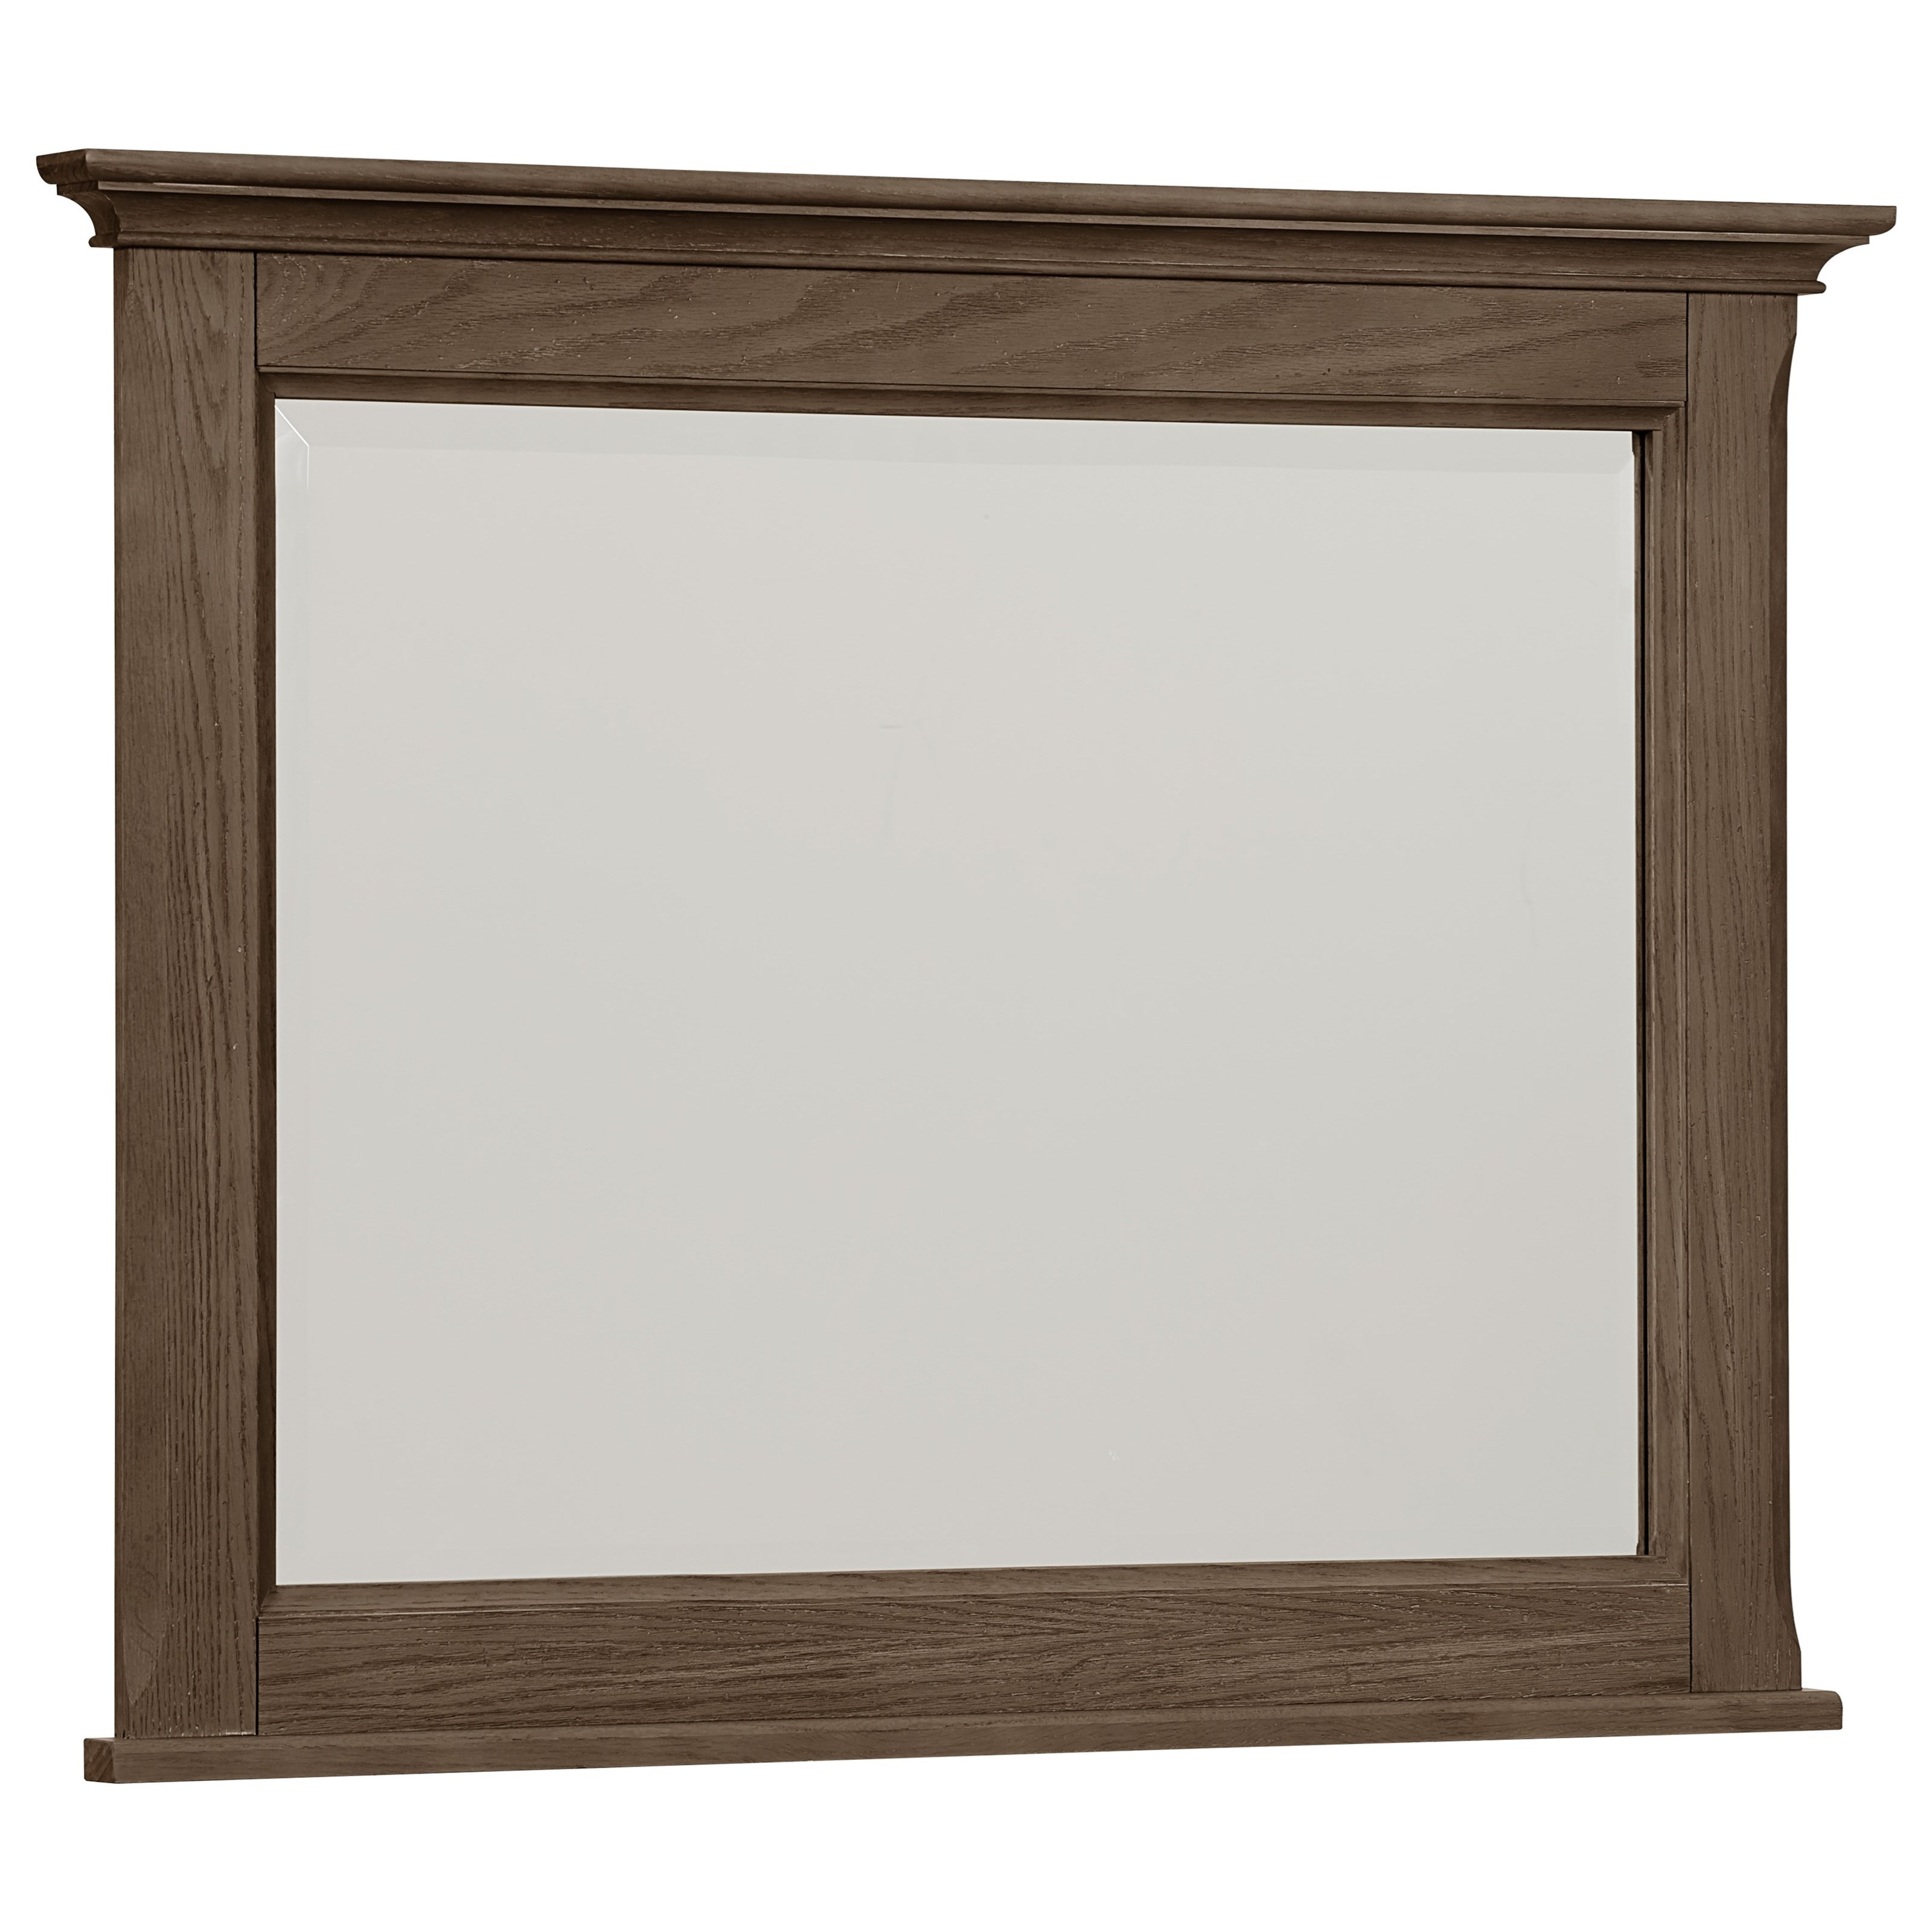 Heritage Landscape Mirror by Artisan & Post at Northeast Factory Direct